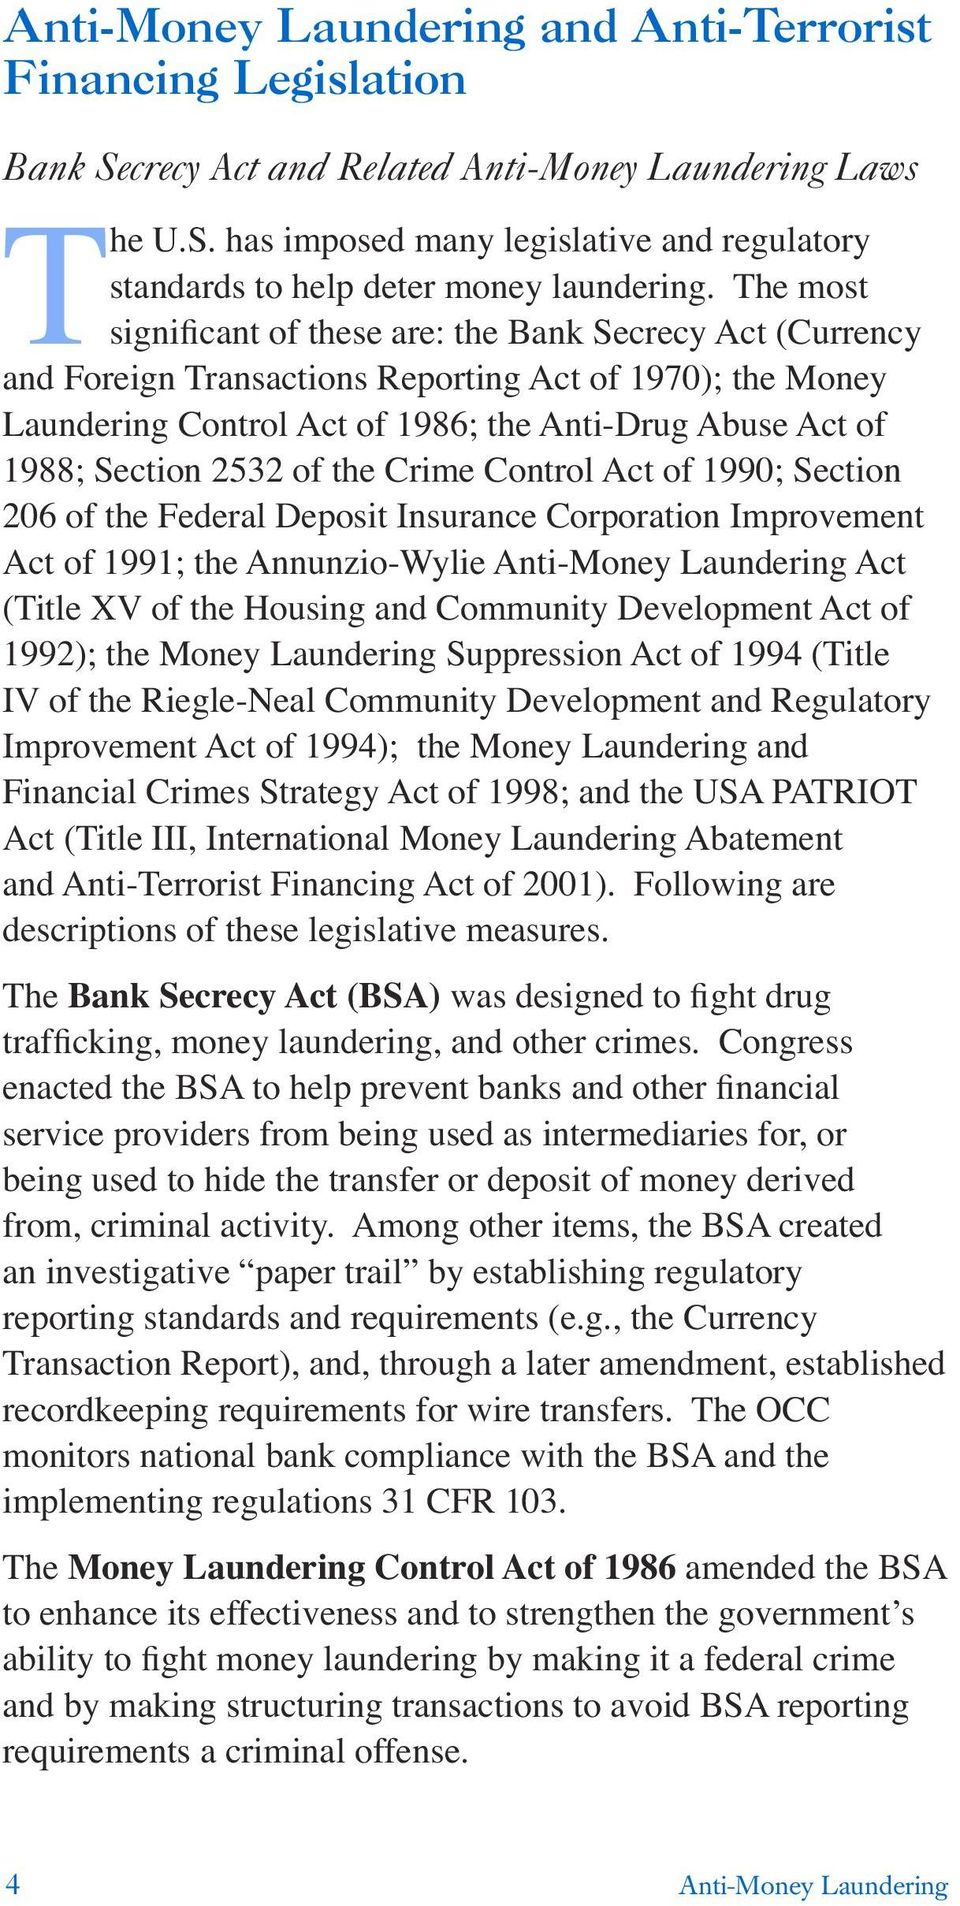 2532 of the Crime Control Act of 1990; Section 206 of the Federal Deposit Insurance Corporation Improvement Act of 1991; the Annunzio-Wylie Anti-Money Laundering Act (Title XV of the Housing and